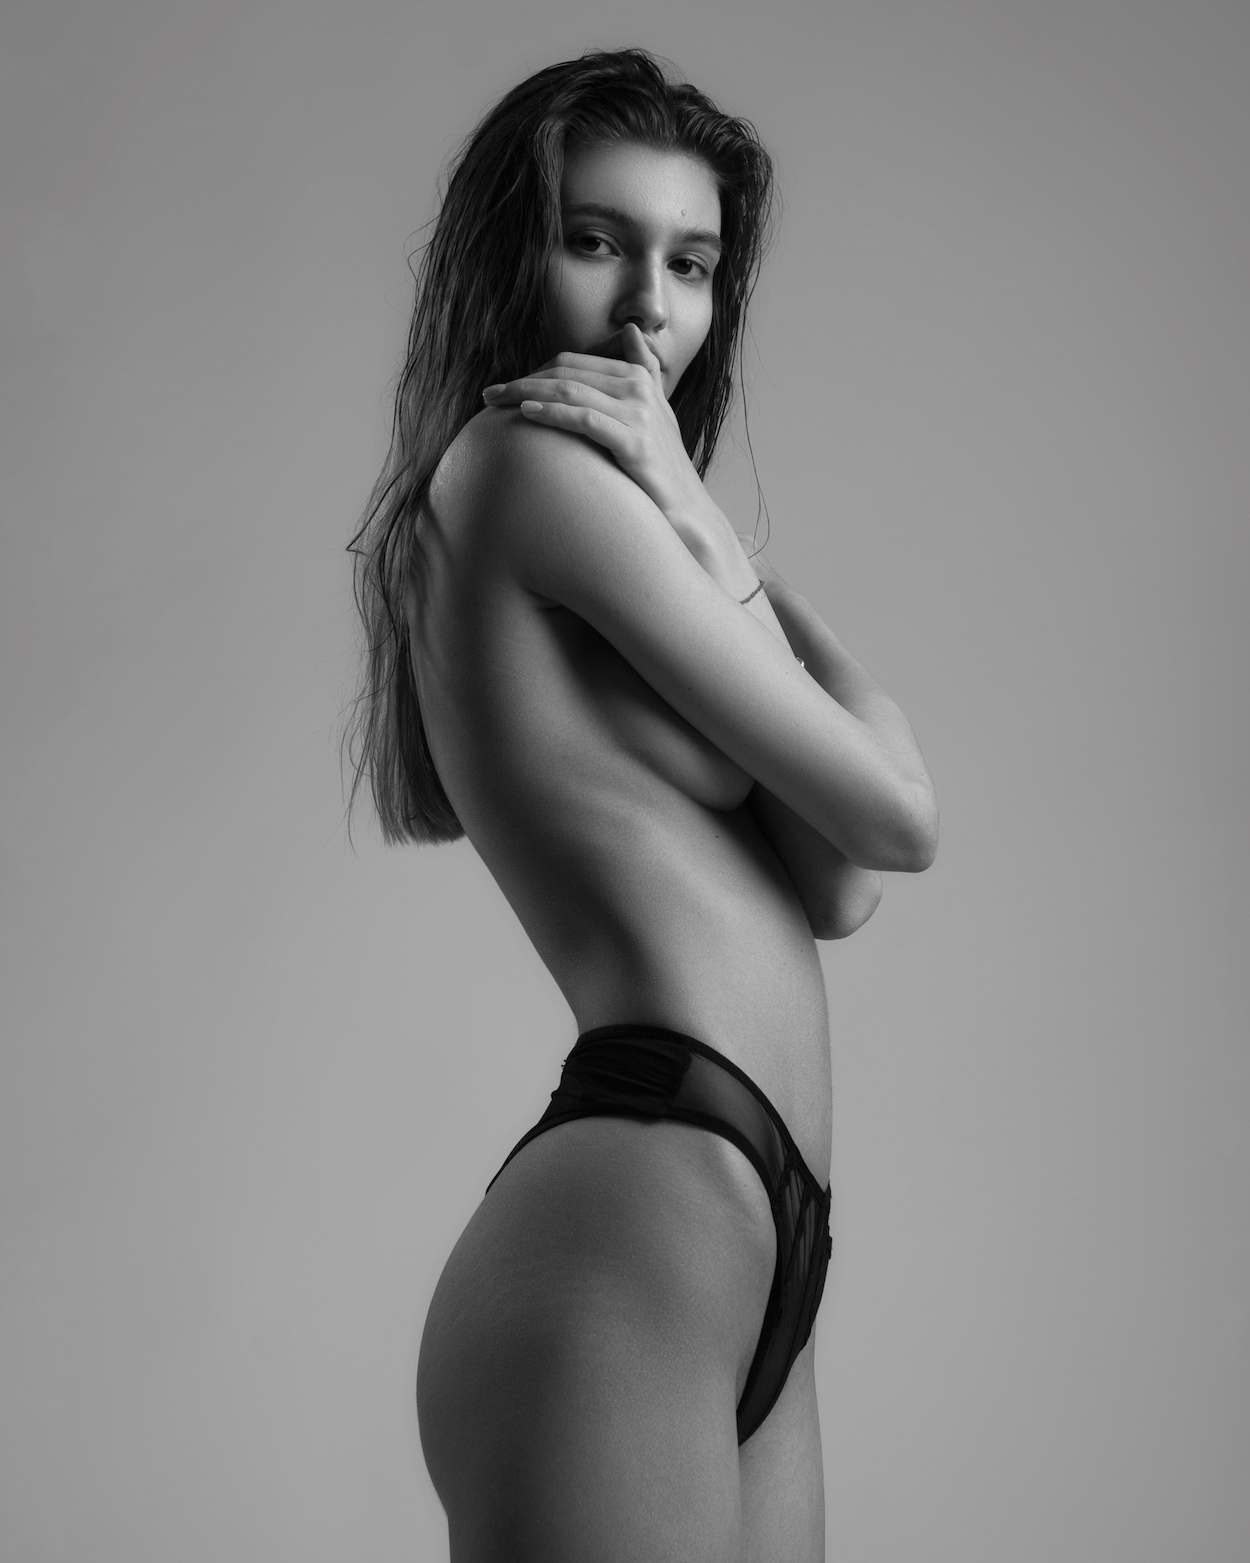 Dasha Boyko by Ilya Izvolsky